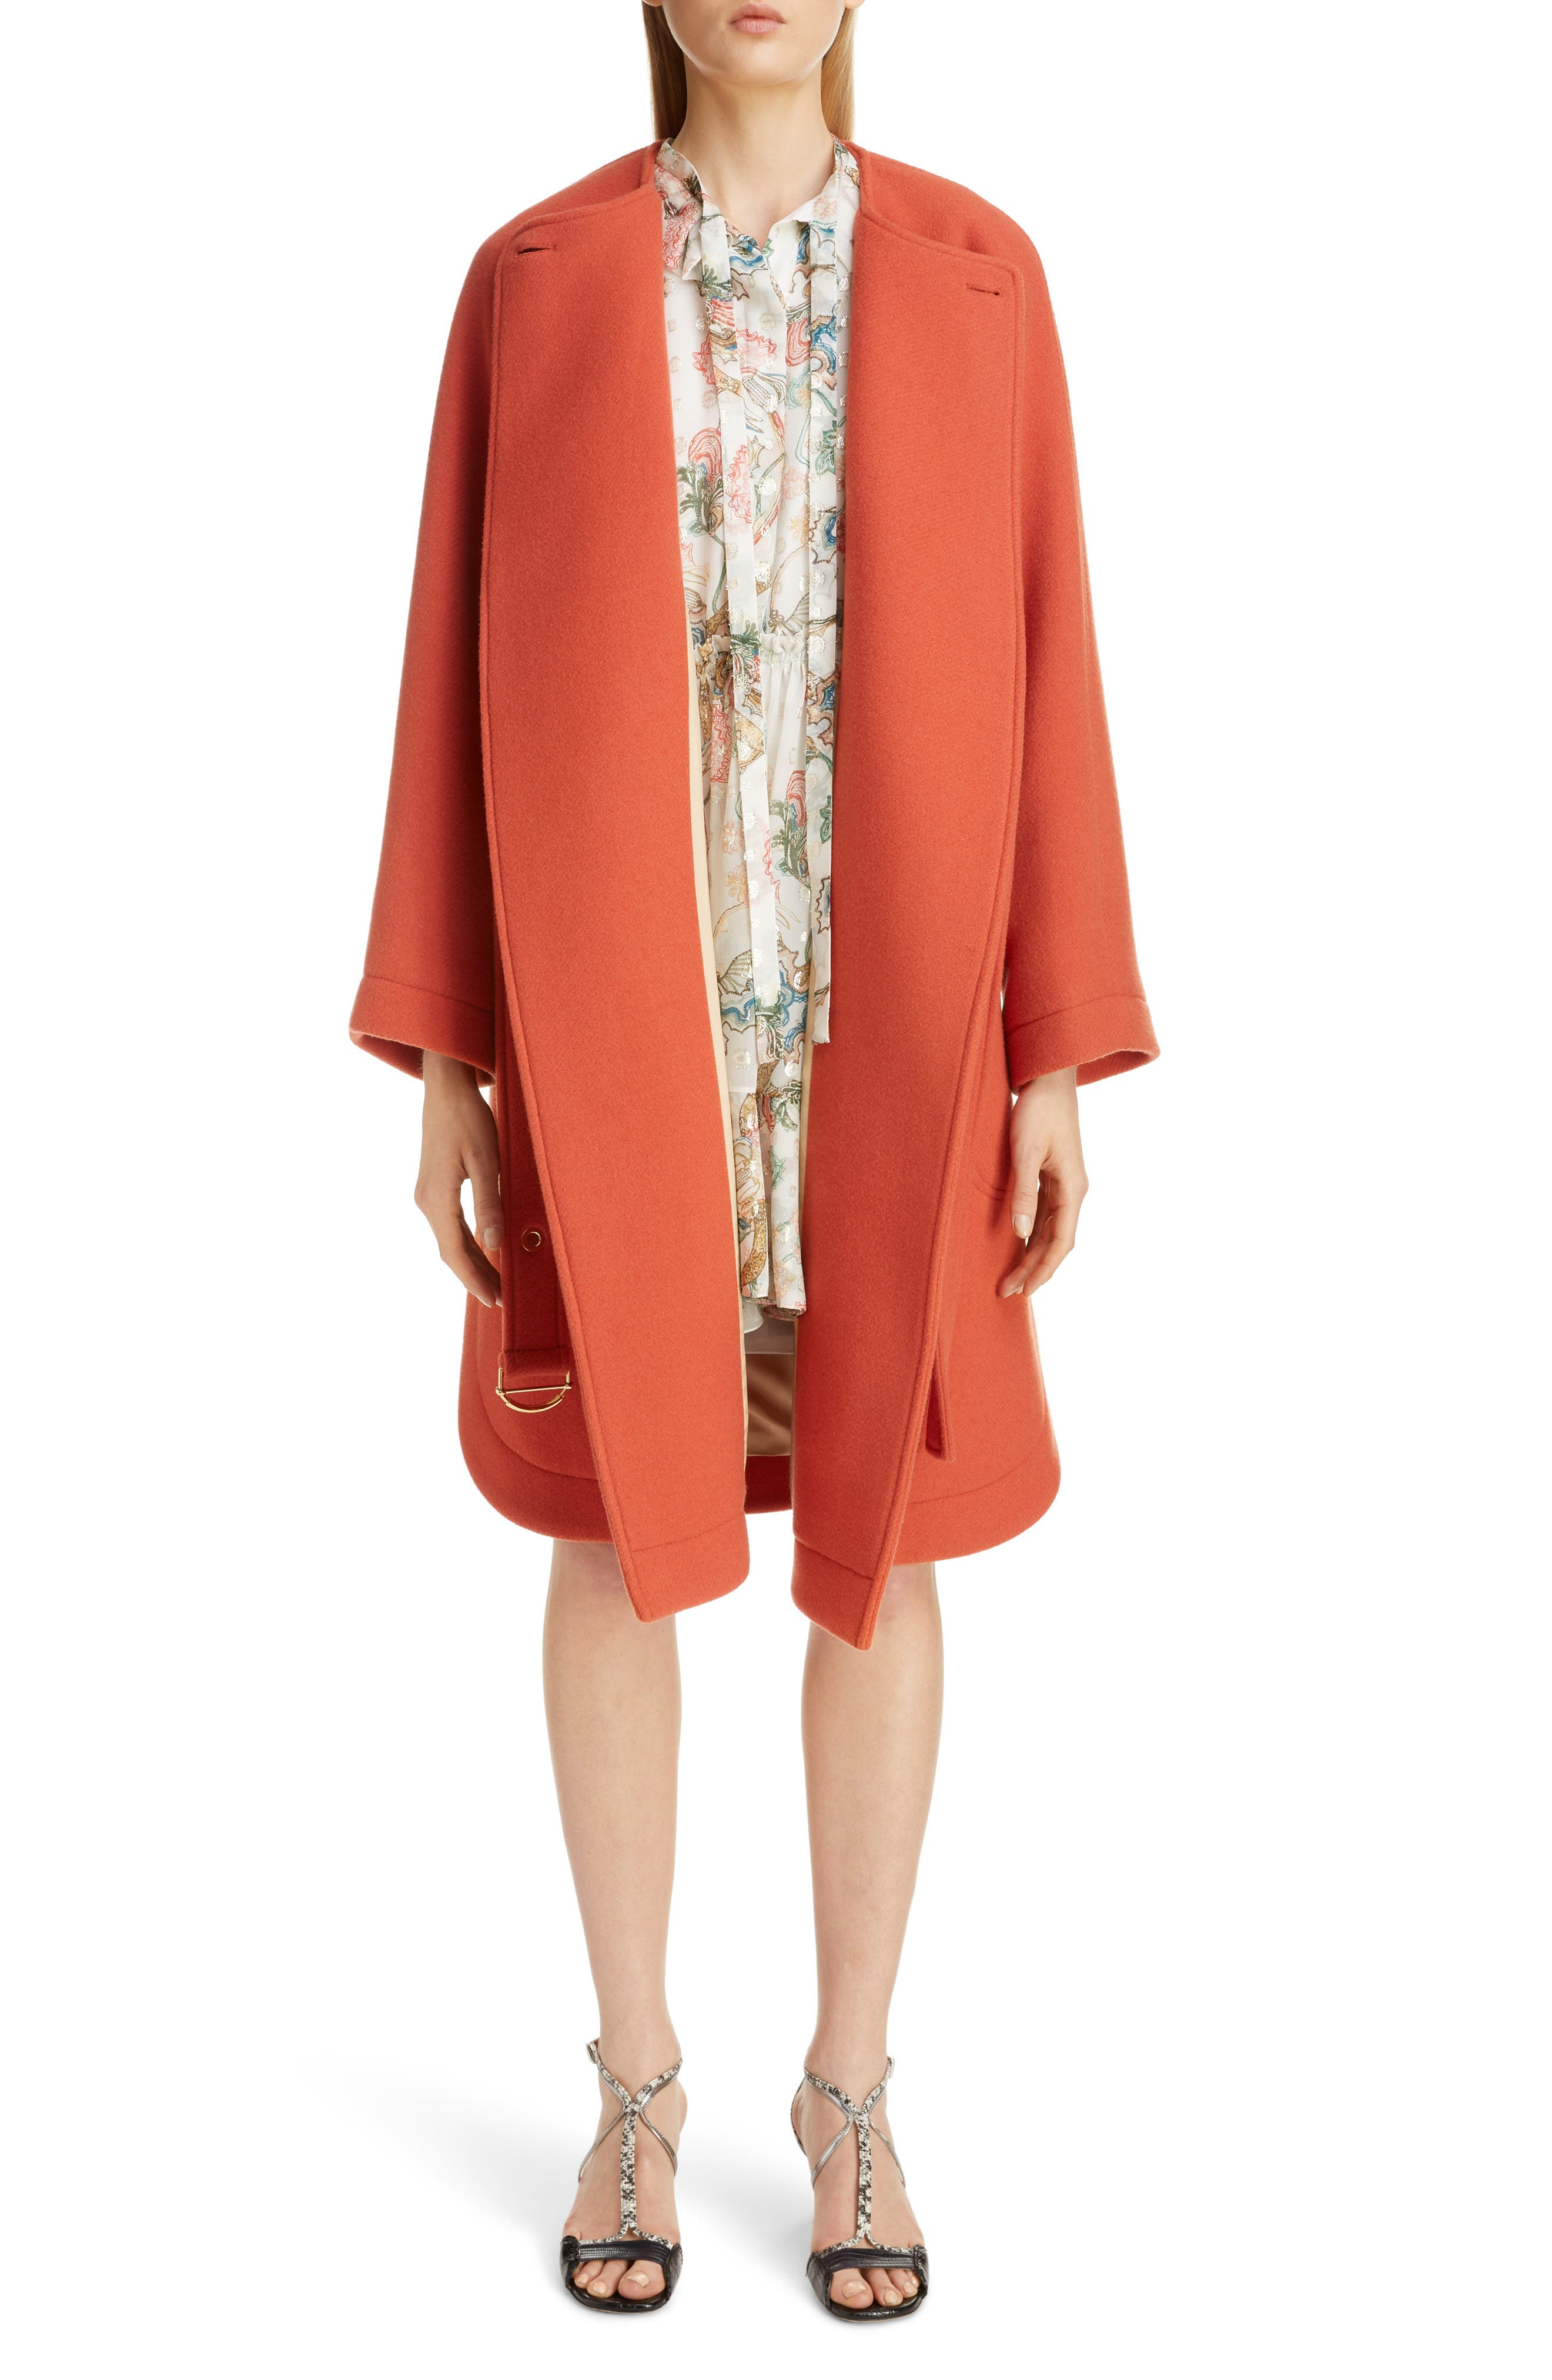 A big single button, bracelet sleeves and rounded hems add vintage charm to this beautiful virgin wool-blend coat done in a pretty chestnut-orange hue. Style Name: Chloe Iconic Wool Blend Coat. Style Number: 5940676. Available in stores.